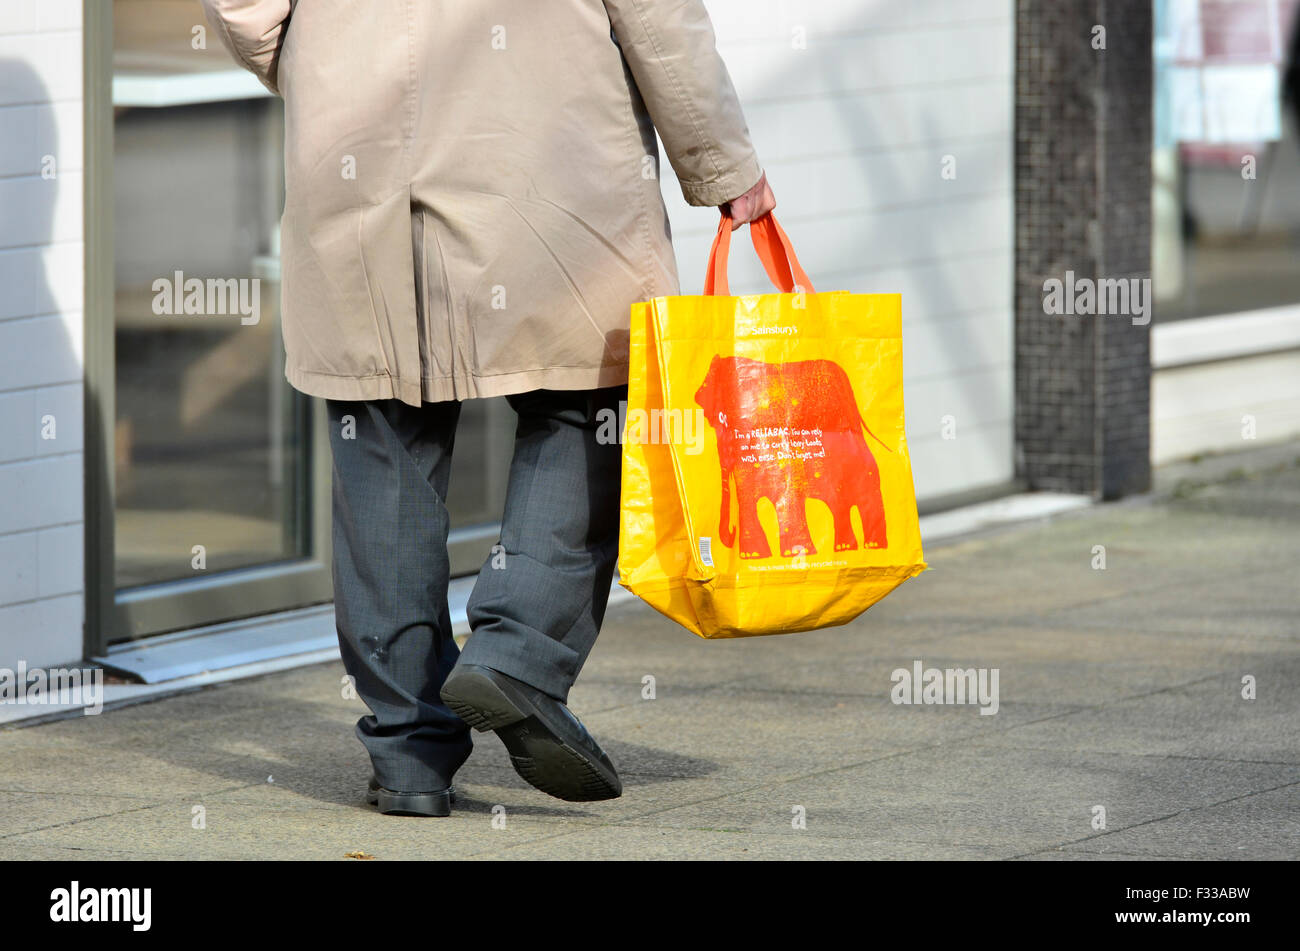 Bristol, UK. 29th September 2015. All users of plastic bags for collecting their shopping will be charged 5p from - Stock Image